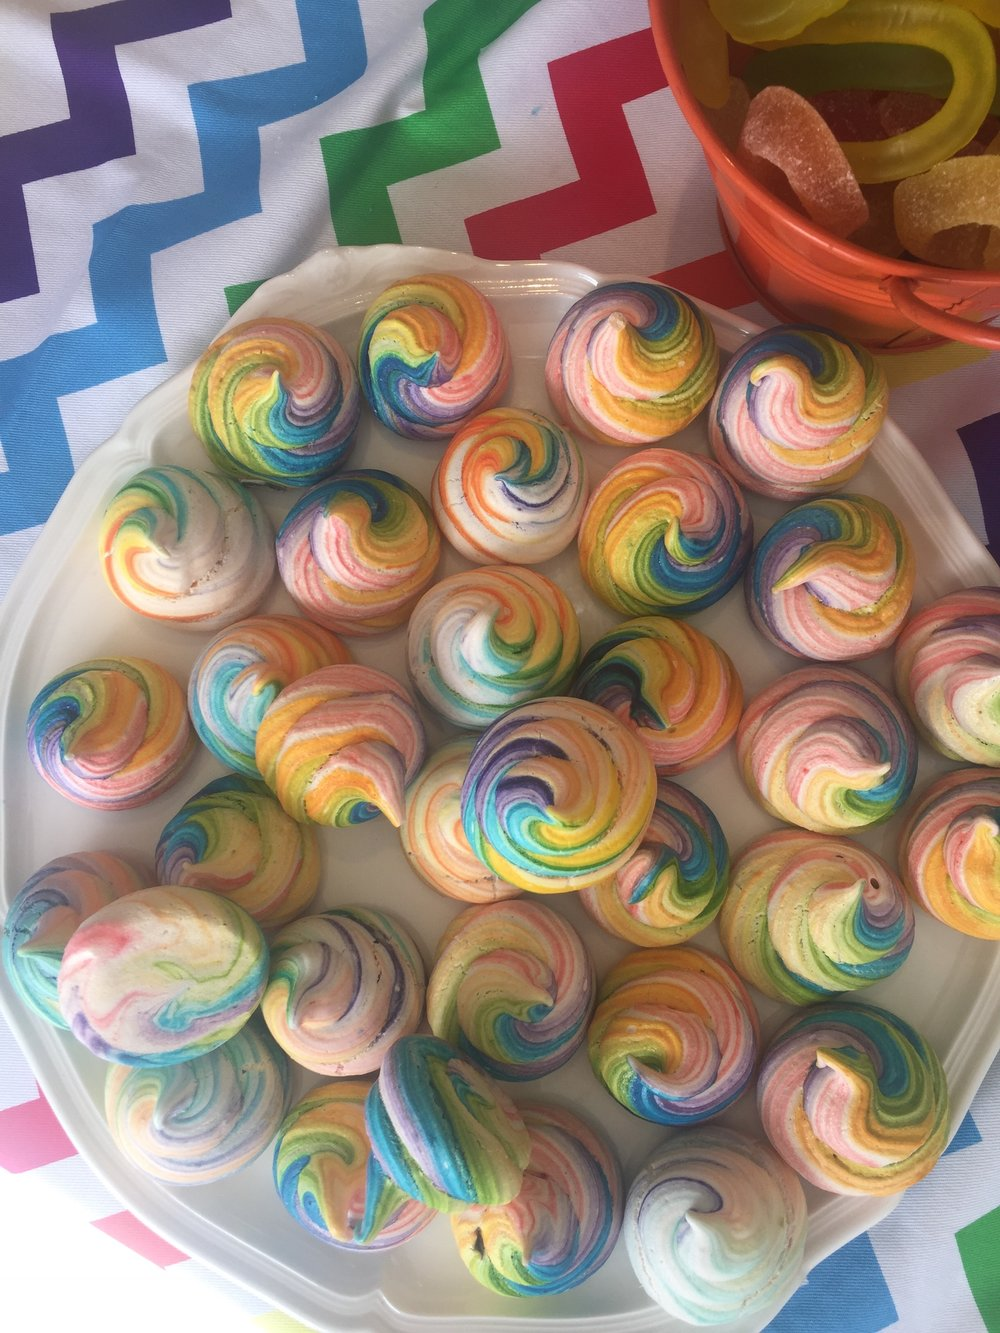 Rainbow Swirled Meringues for Neve's Rainbow Unicorn Themed Birthday Party